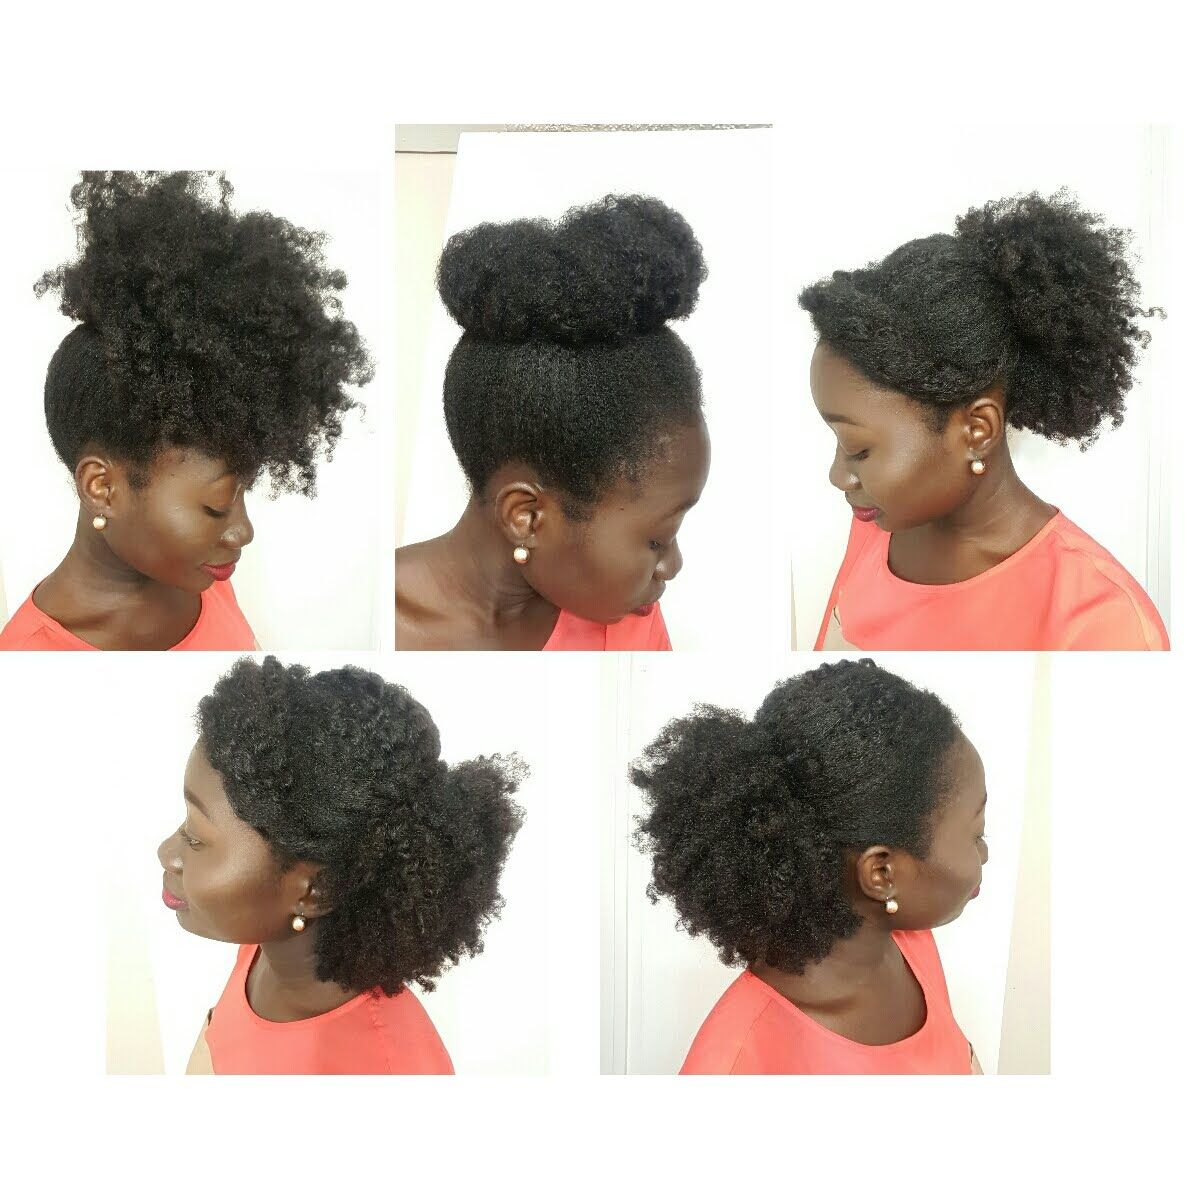 5 Simple Natural Hair Styles Medium Length With Images